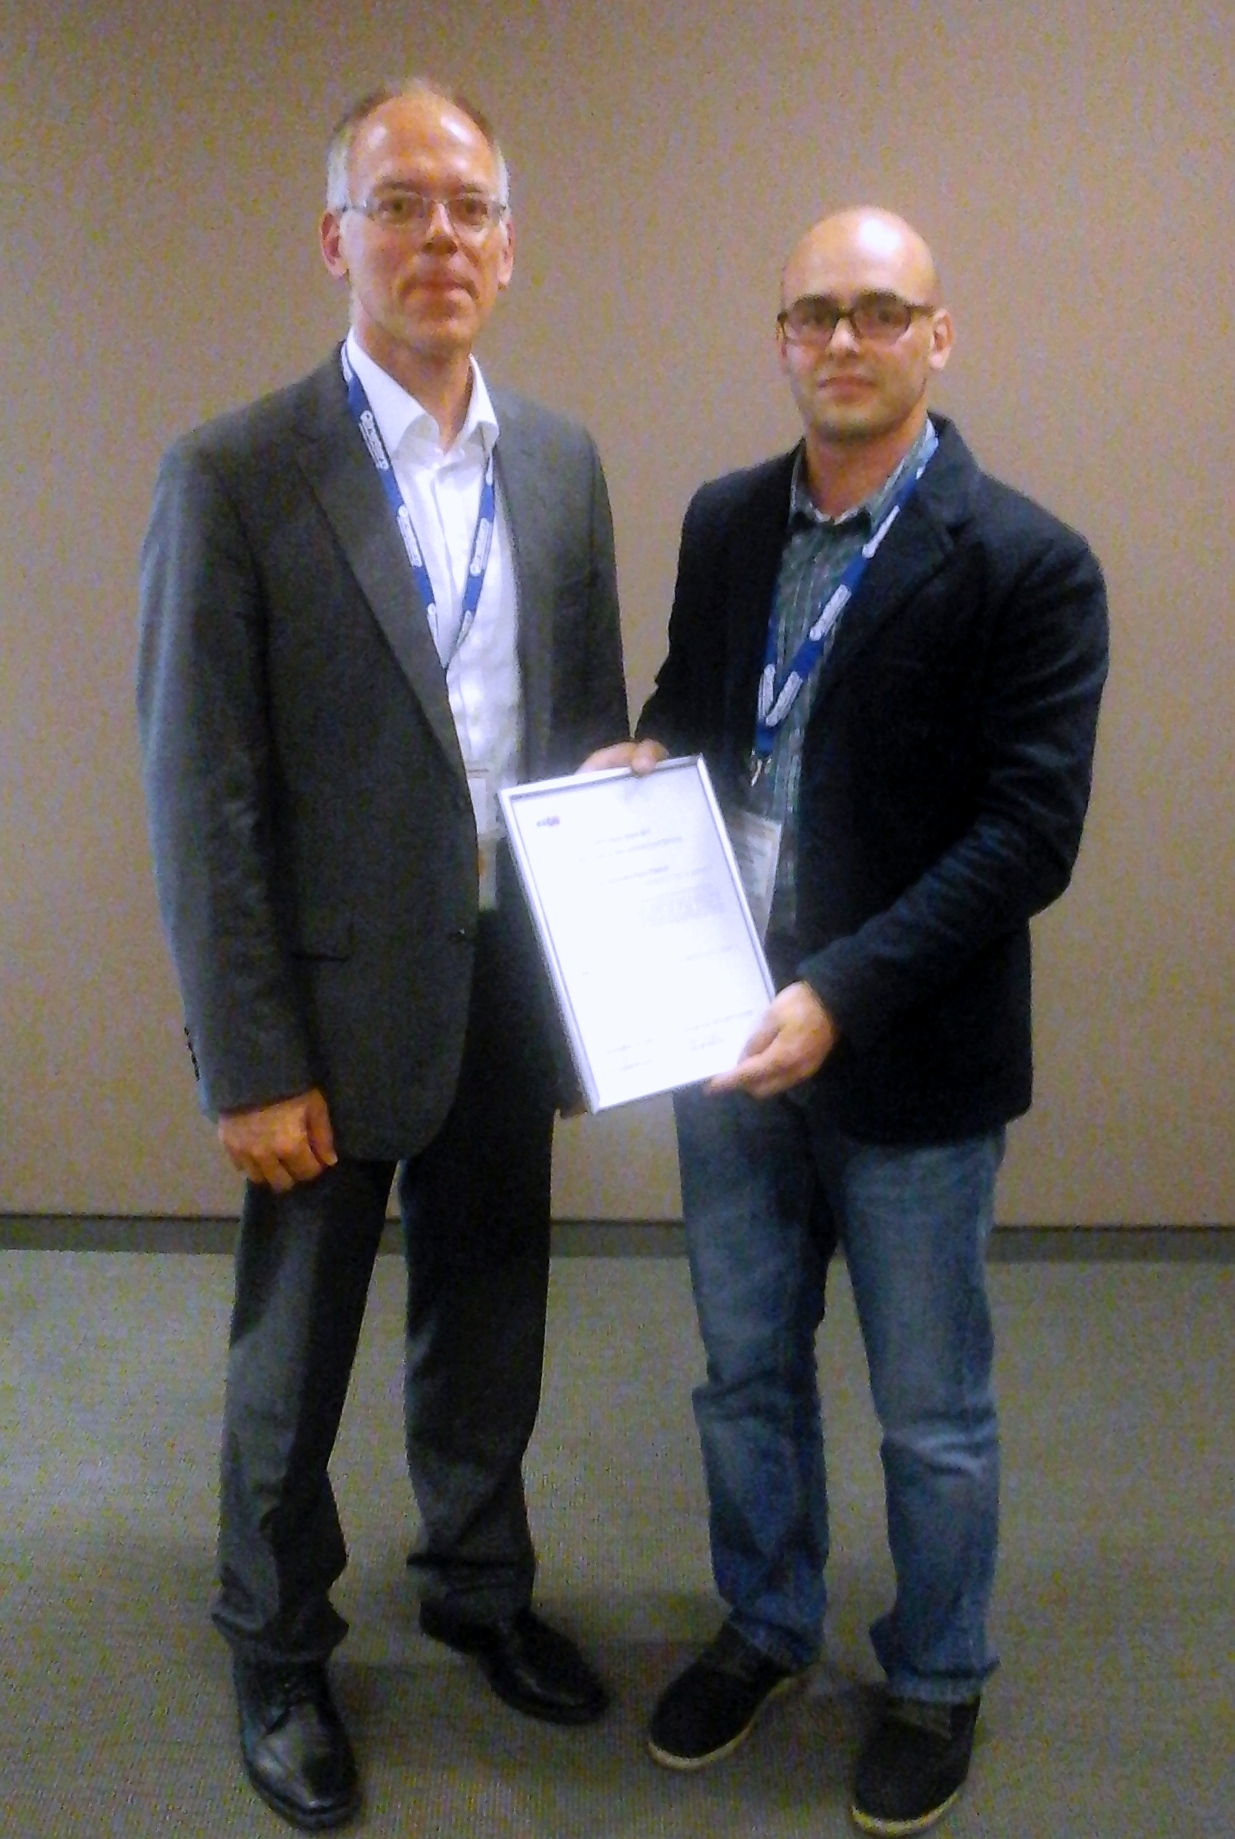 receiving the award from Thomas Nolte 2